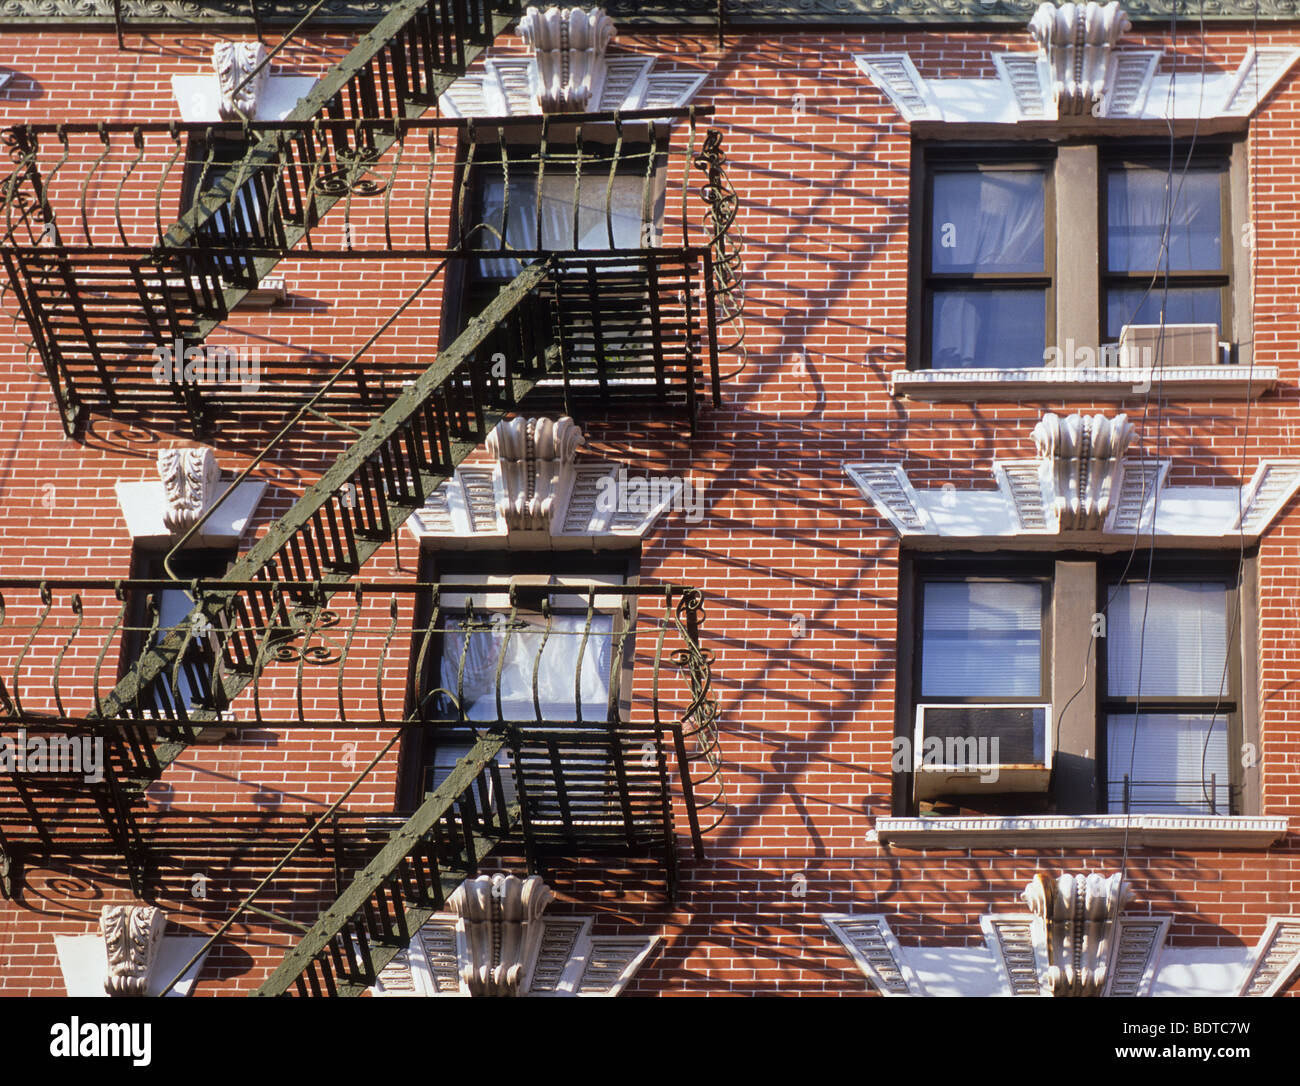 New Construction Brick Home: New York City Red Brick Tenement Building With Fire